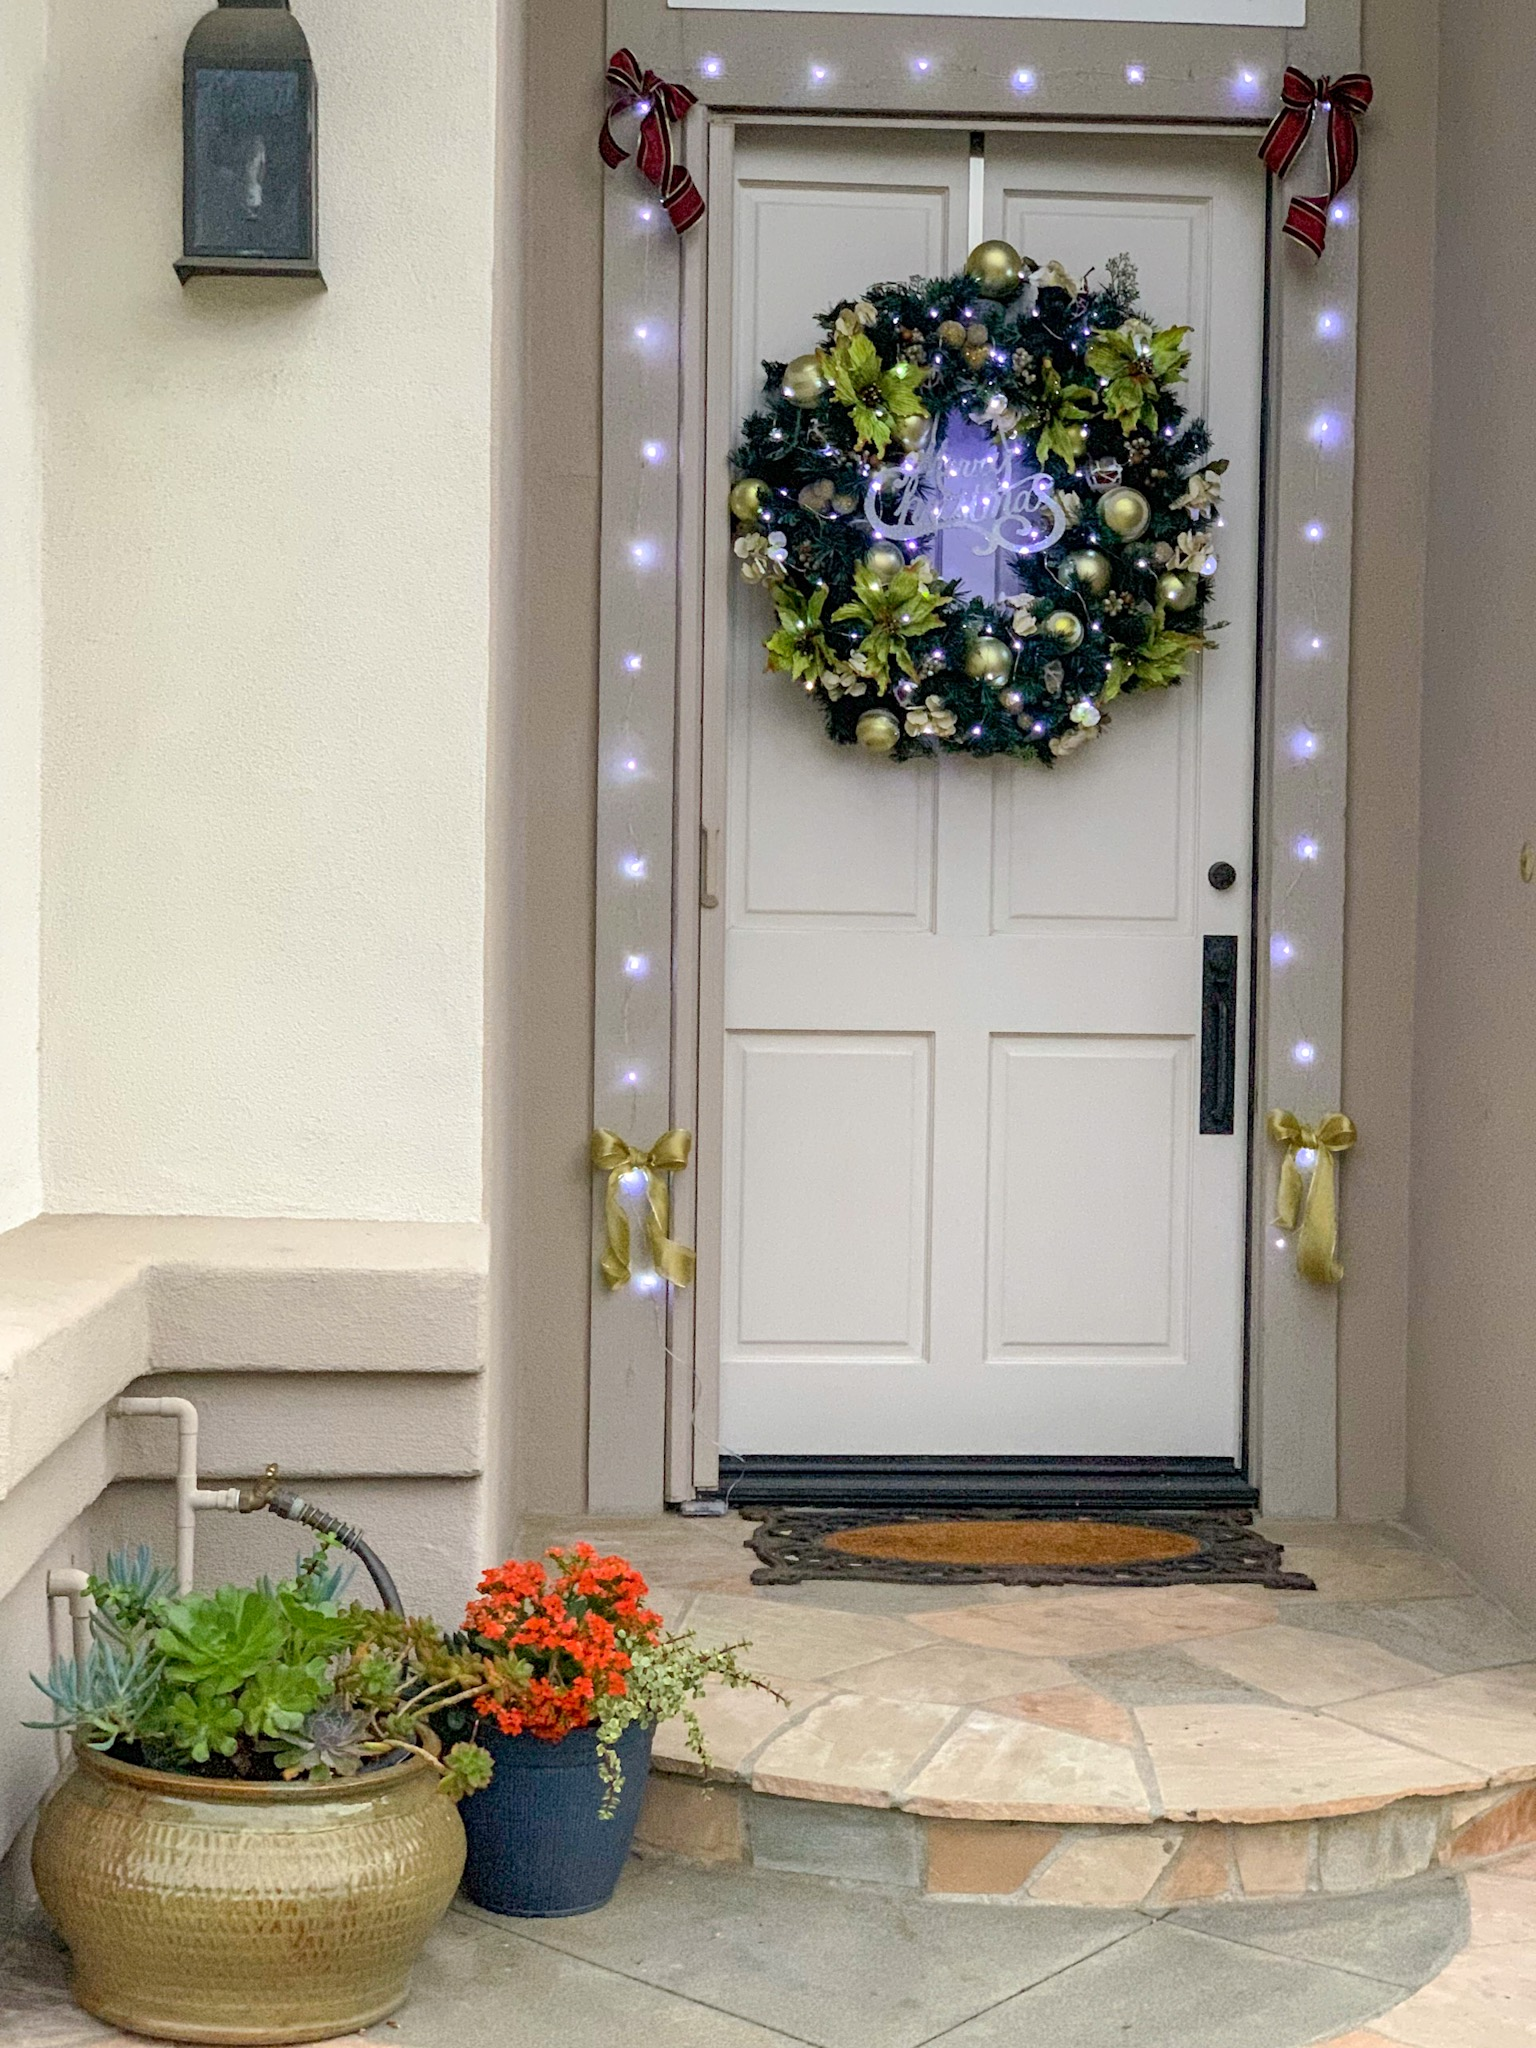 With lights - Instant sparkle and focal point on my door